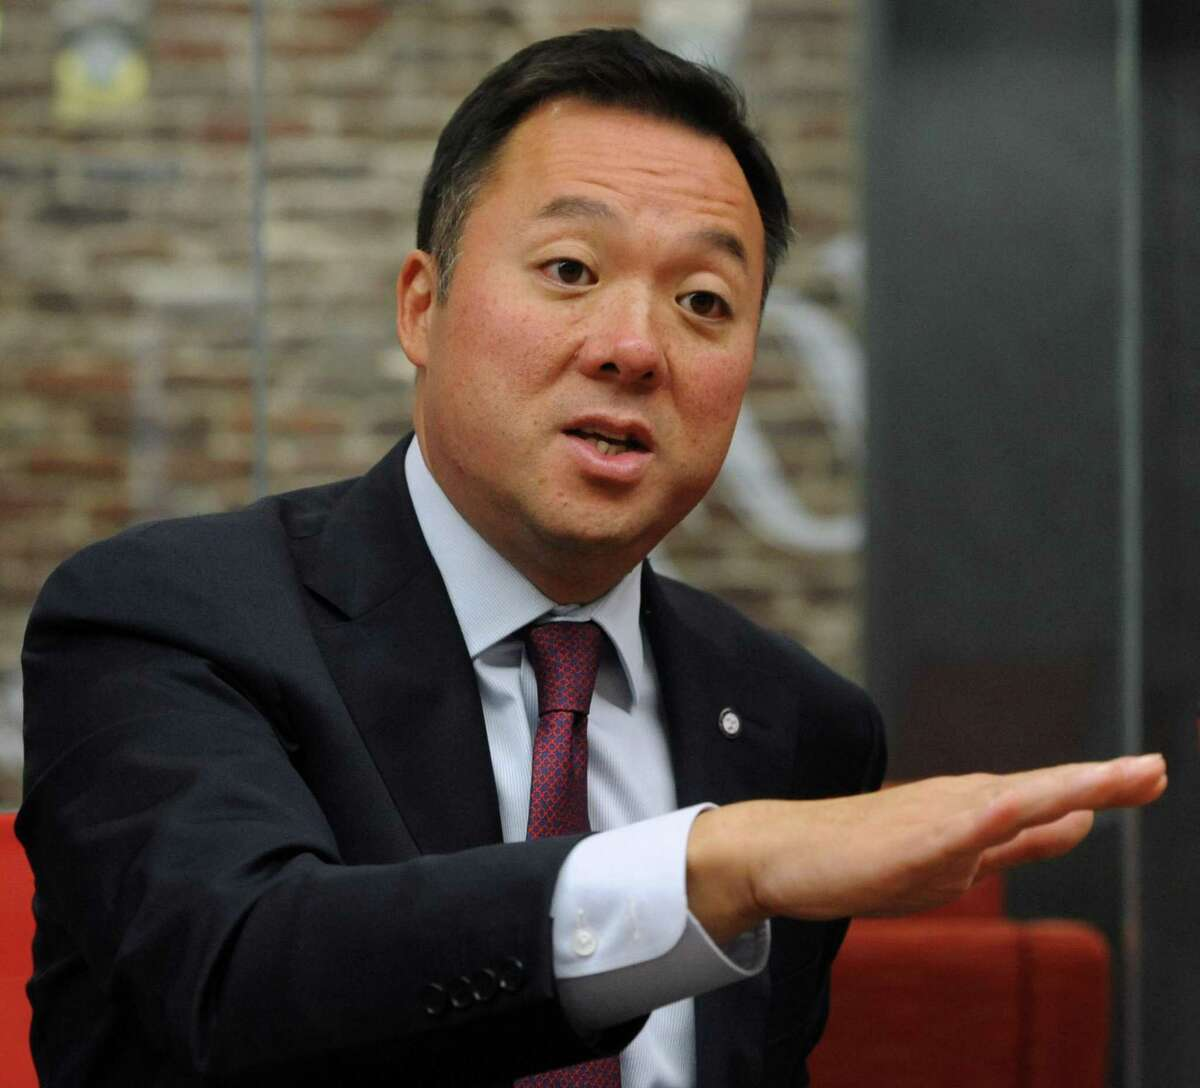 """""""We need stronger enforcement - whether from the FDA alone or in conjunction with the Department of Justice,"""" said Connecticut Attorney General William Tong. """"It needs to be stronger, and it hasn't been."""""""